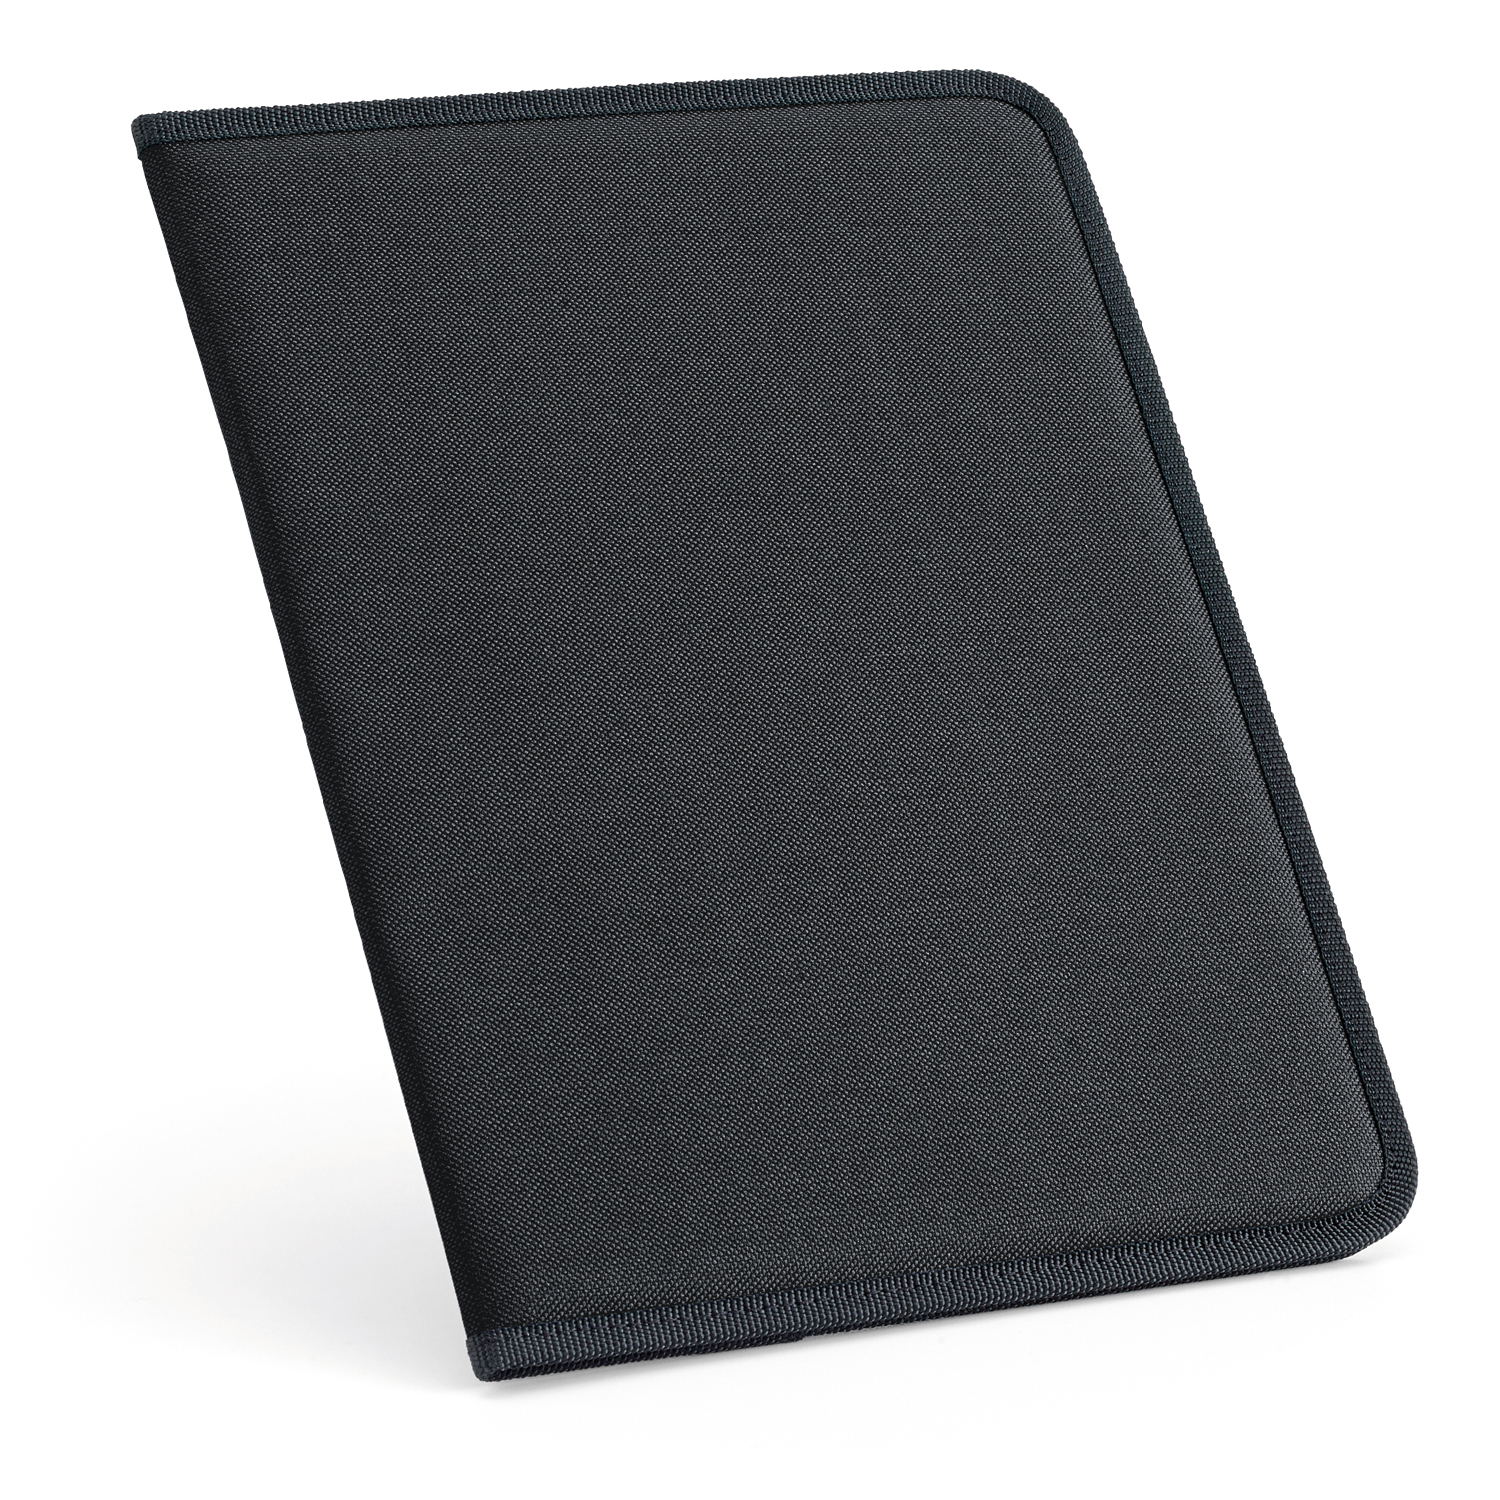 Folder 034 (A4 Document folder with 20 sheets inside) - hmi62034-01 (Black)